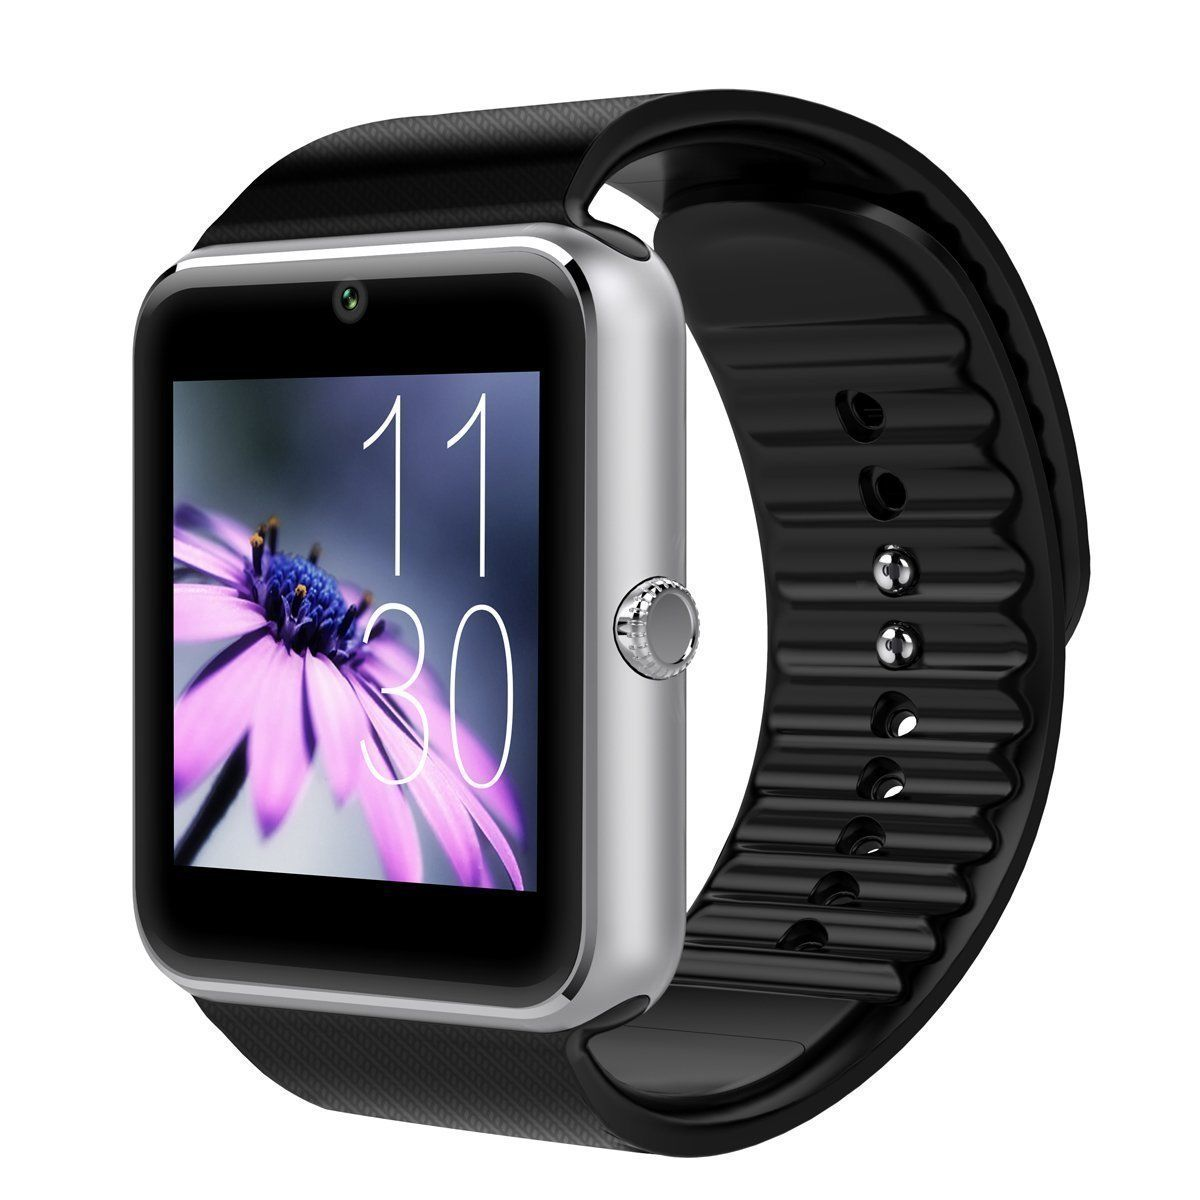 T6 Bluetooth Smart Watch Wrist Watch with Camera For Android IOS Smart Phone Samsung S5 / Note 2 / 3 / 4, Nexus 6, HTC, Sony, Huawei and Other Android Smart Phones